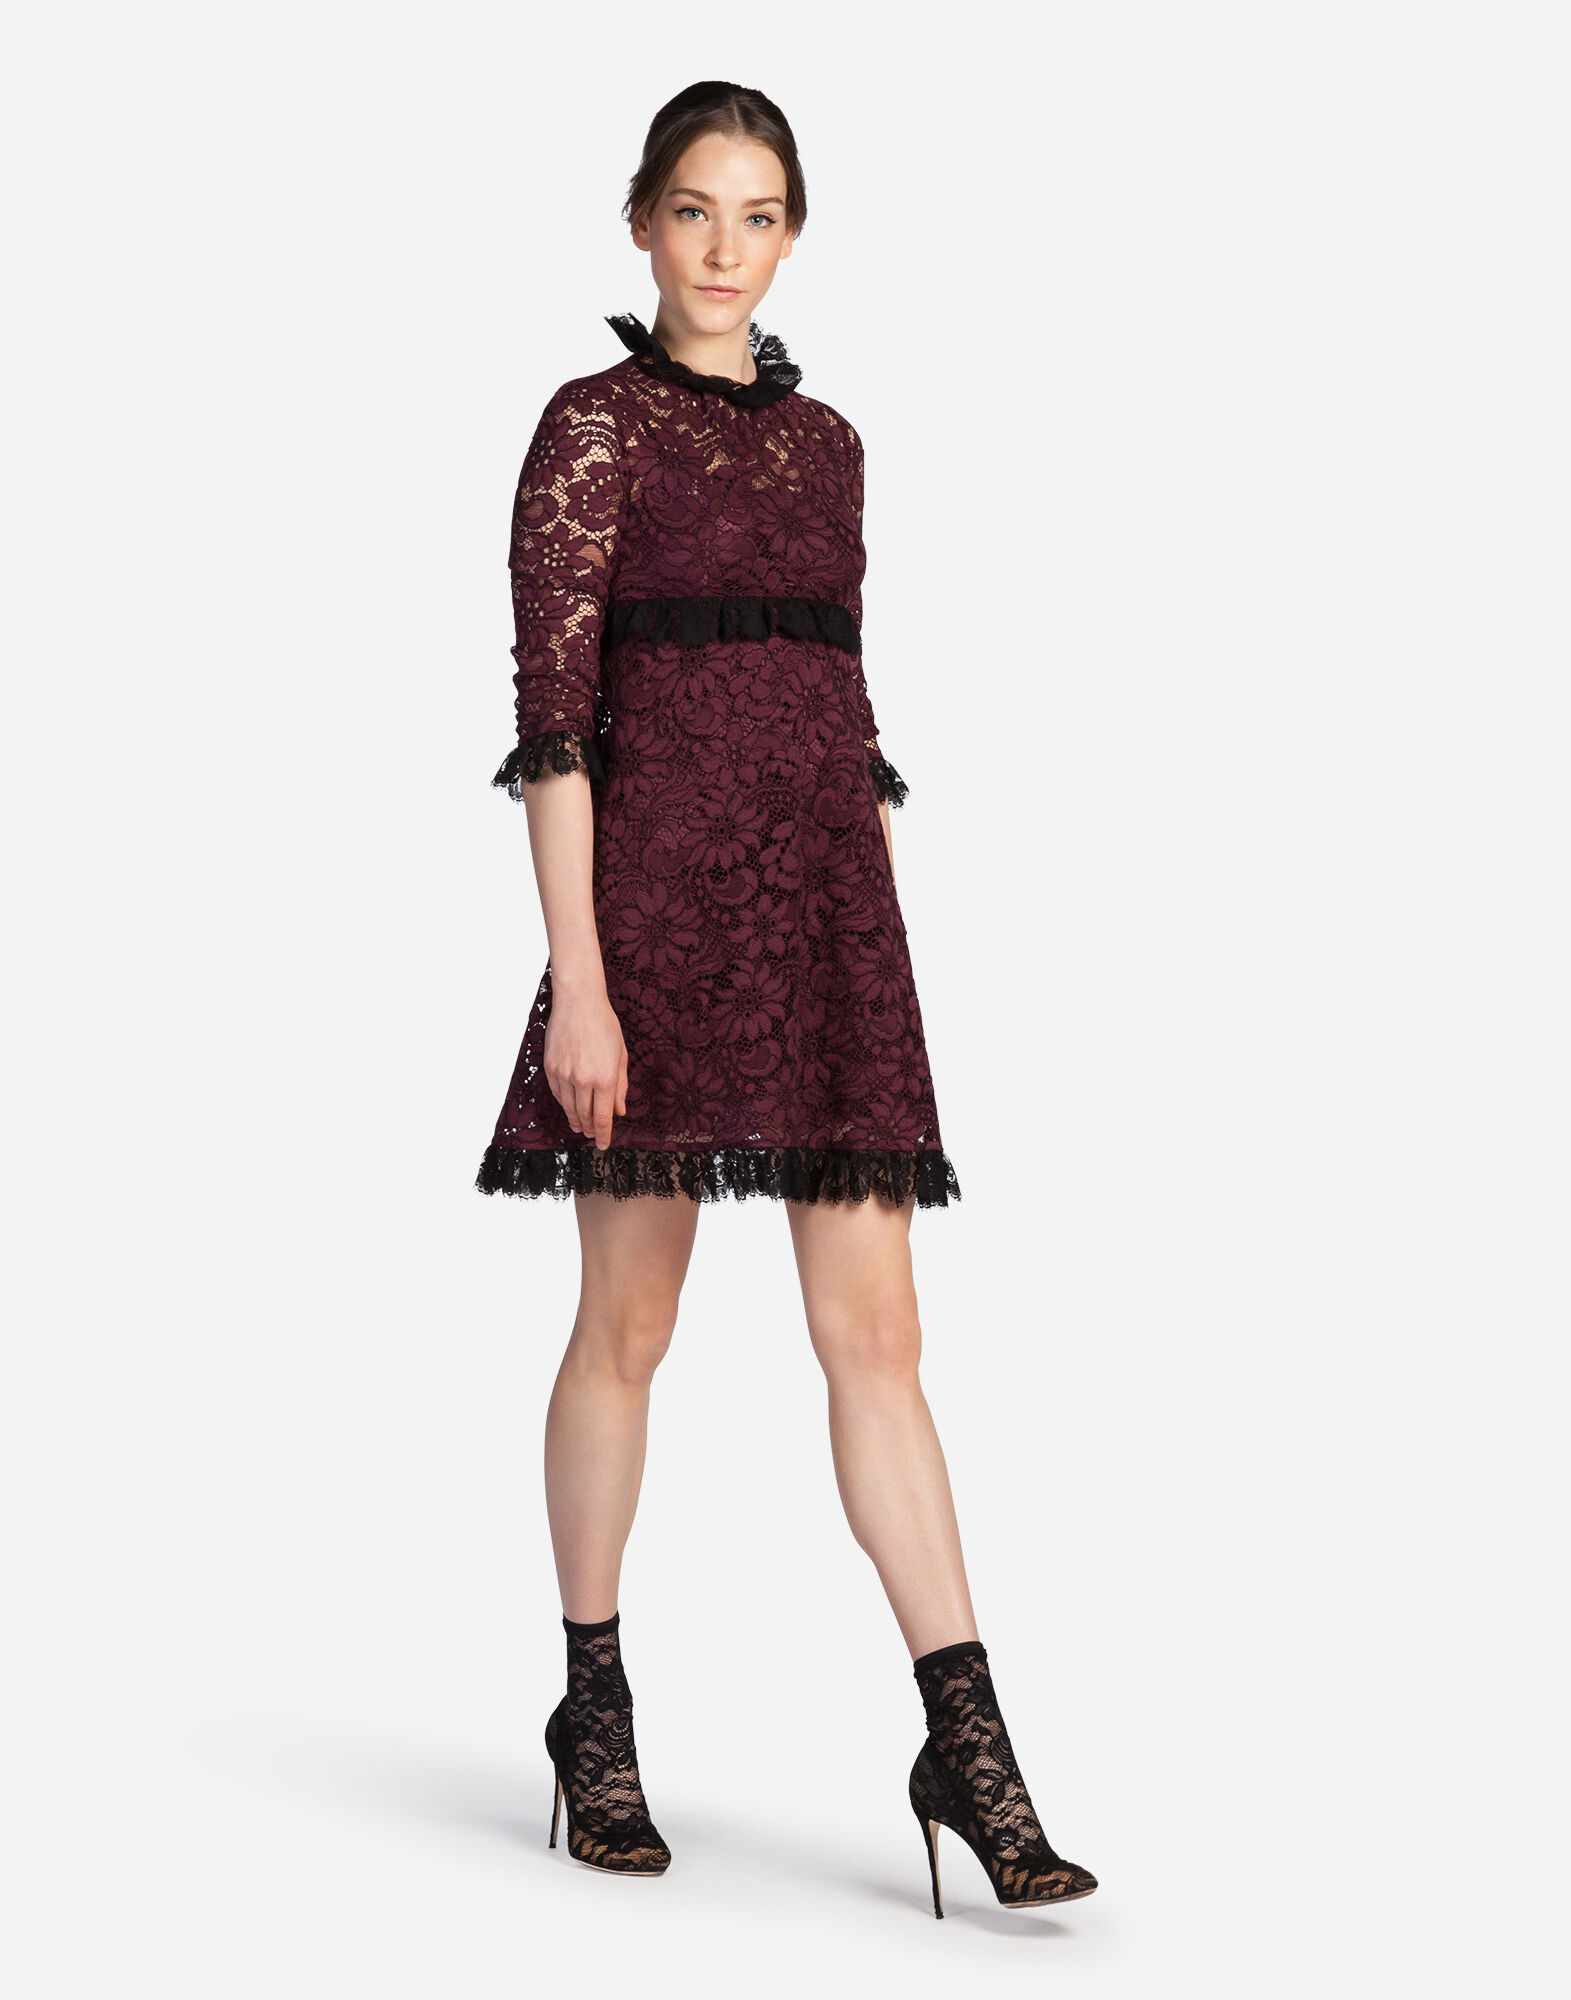 A-LINE DRESS IN CORDONETTO LACE